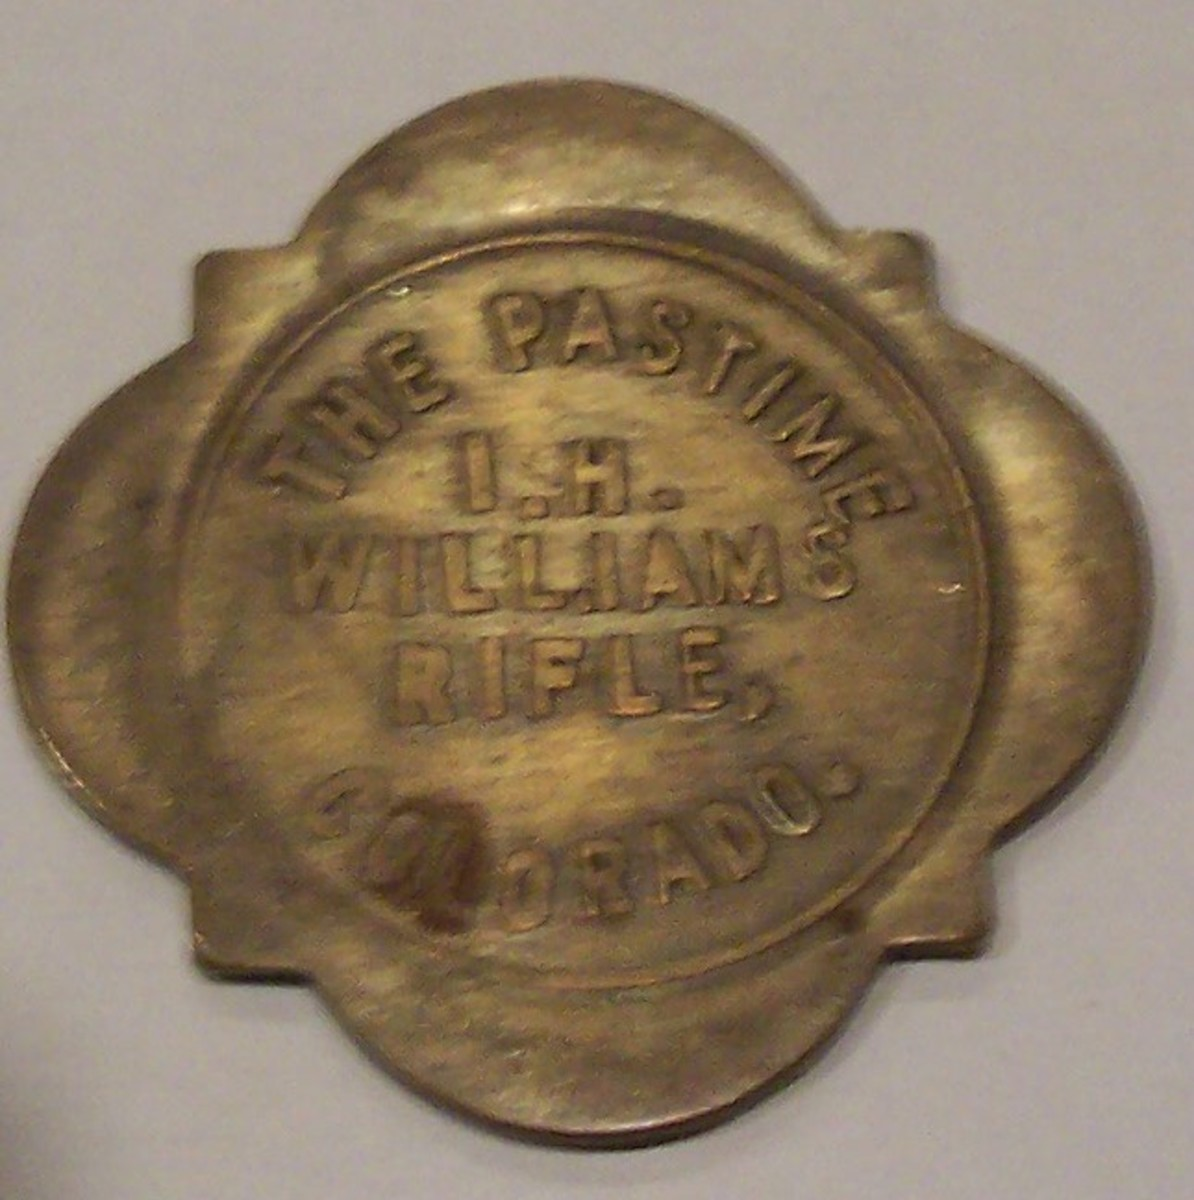 Bar Token from Colorado